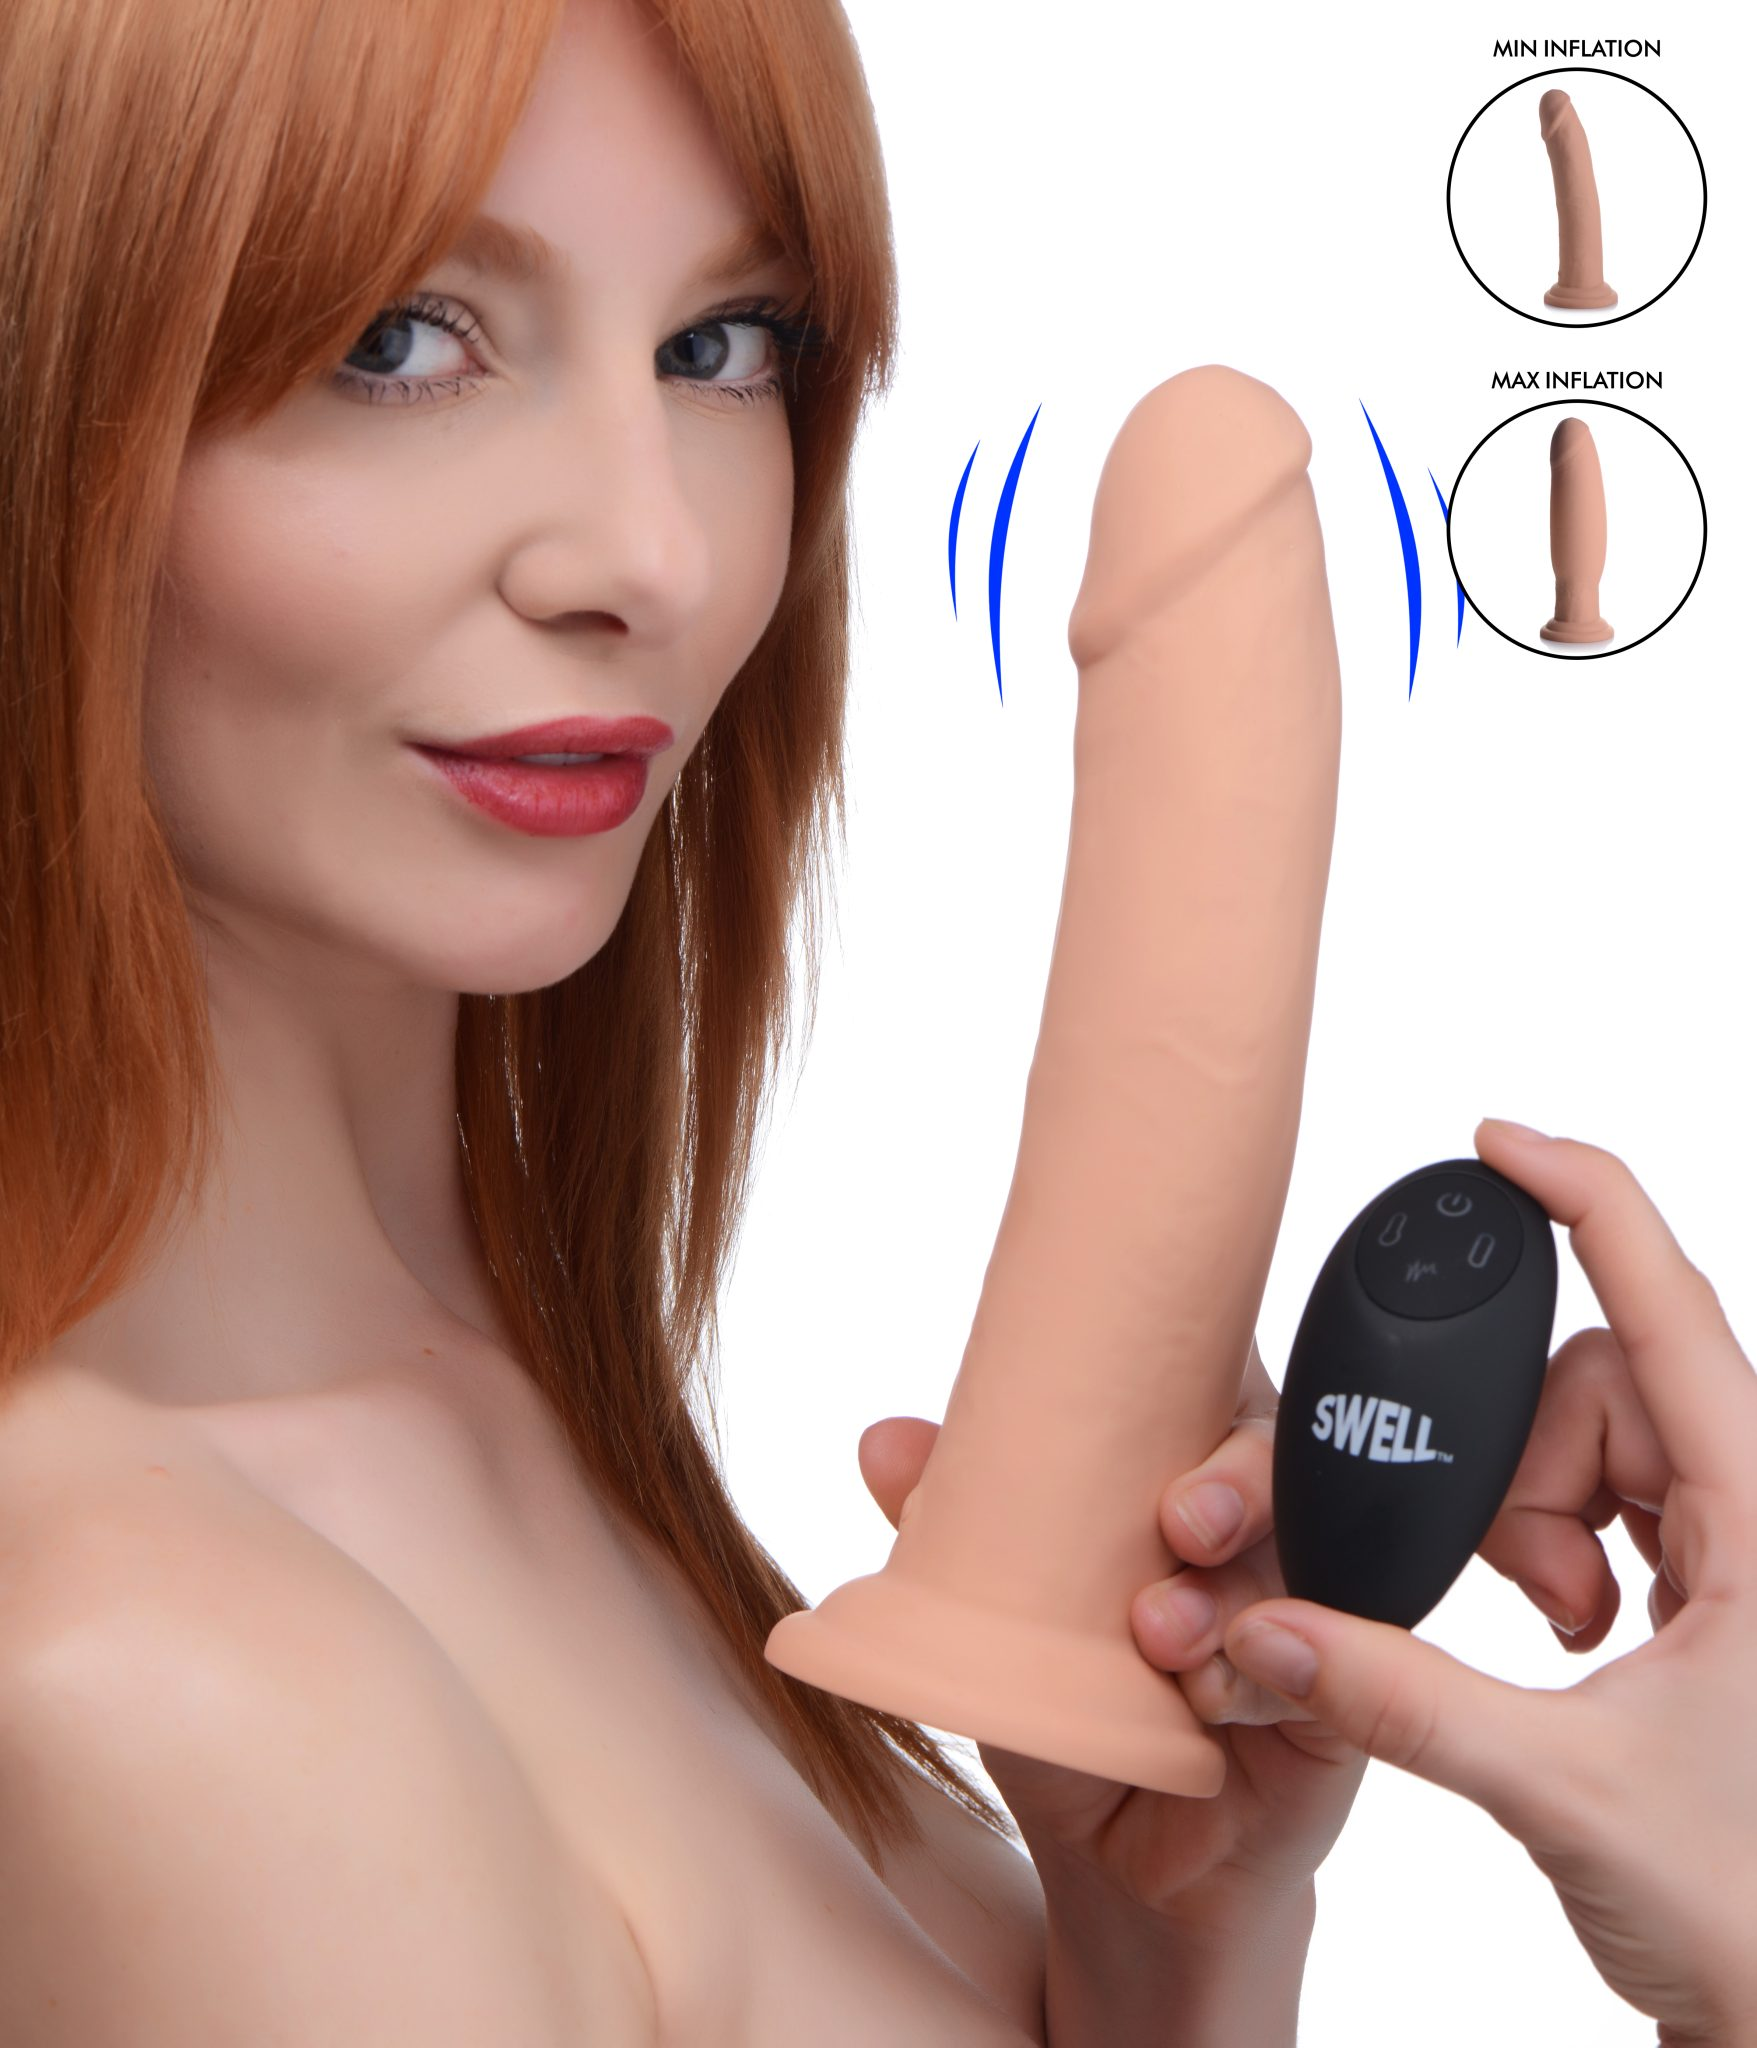 7X Inflatable and Vibrating Remote Control Silicone Dildo – 8.5 Inch